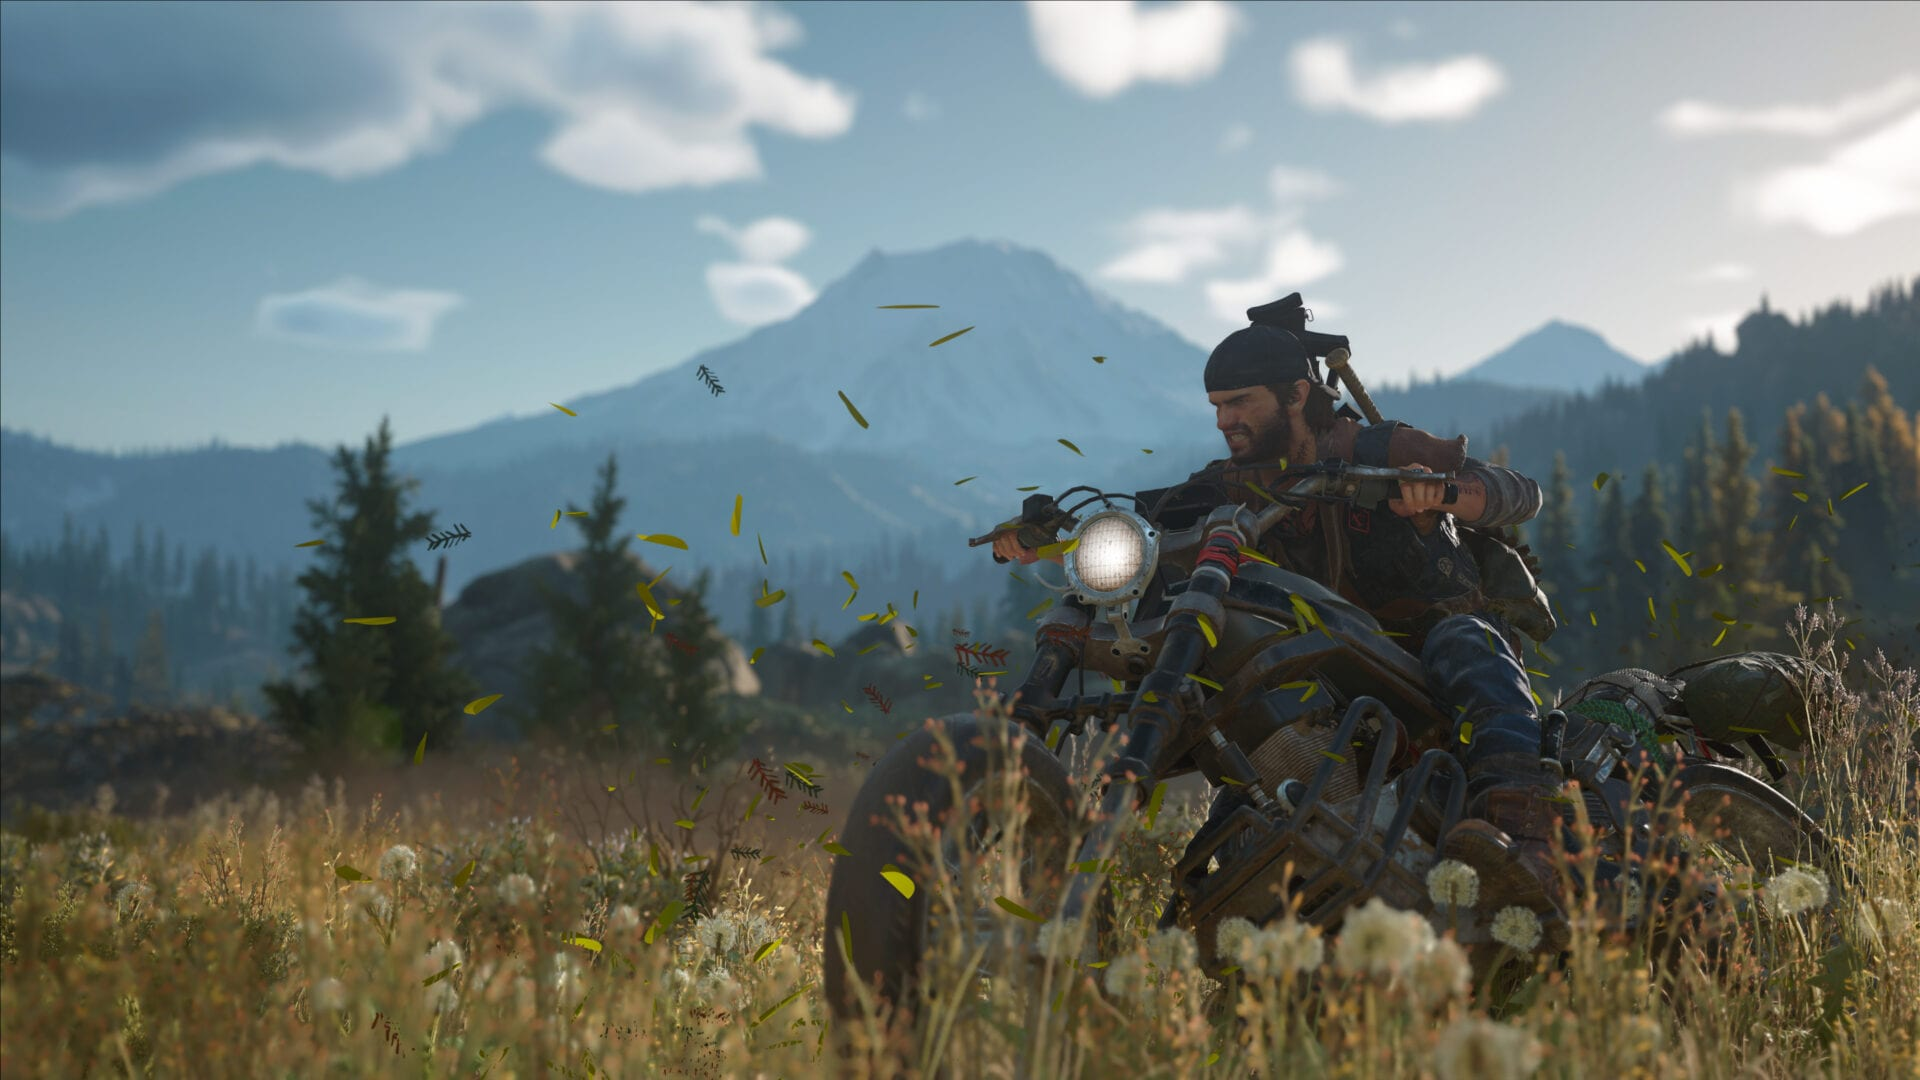 Days Gone Steam Page Reveals System Requirements & Visual Improvements - Twinfinite